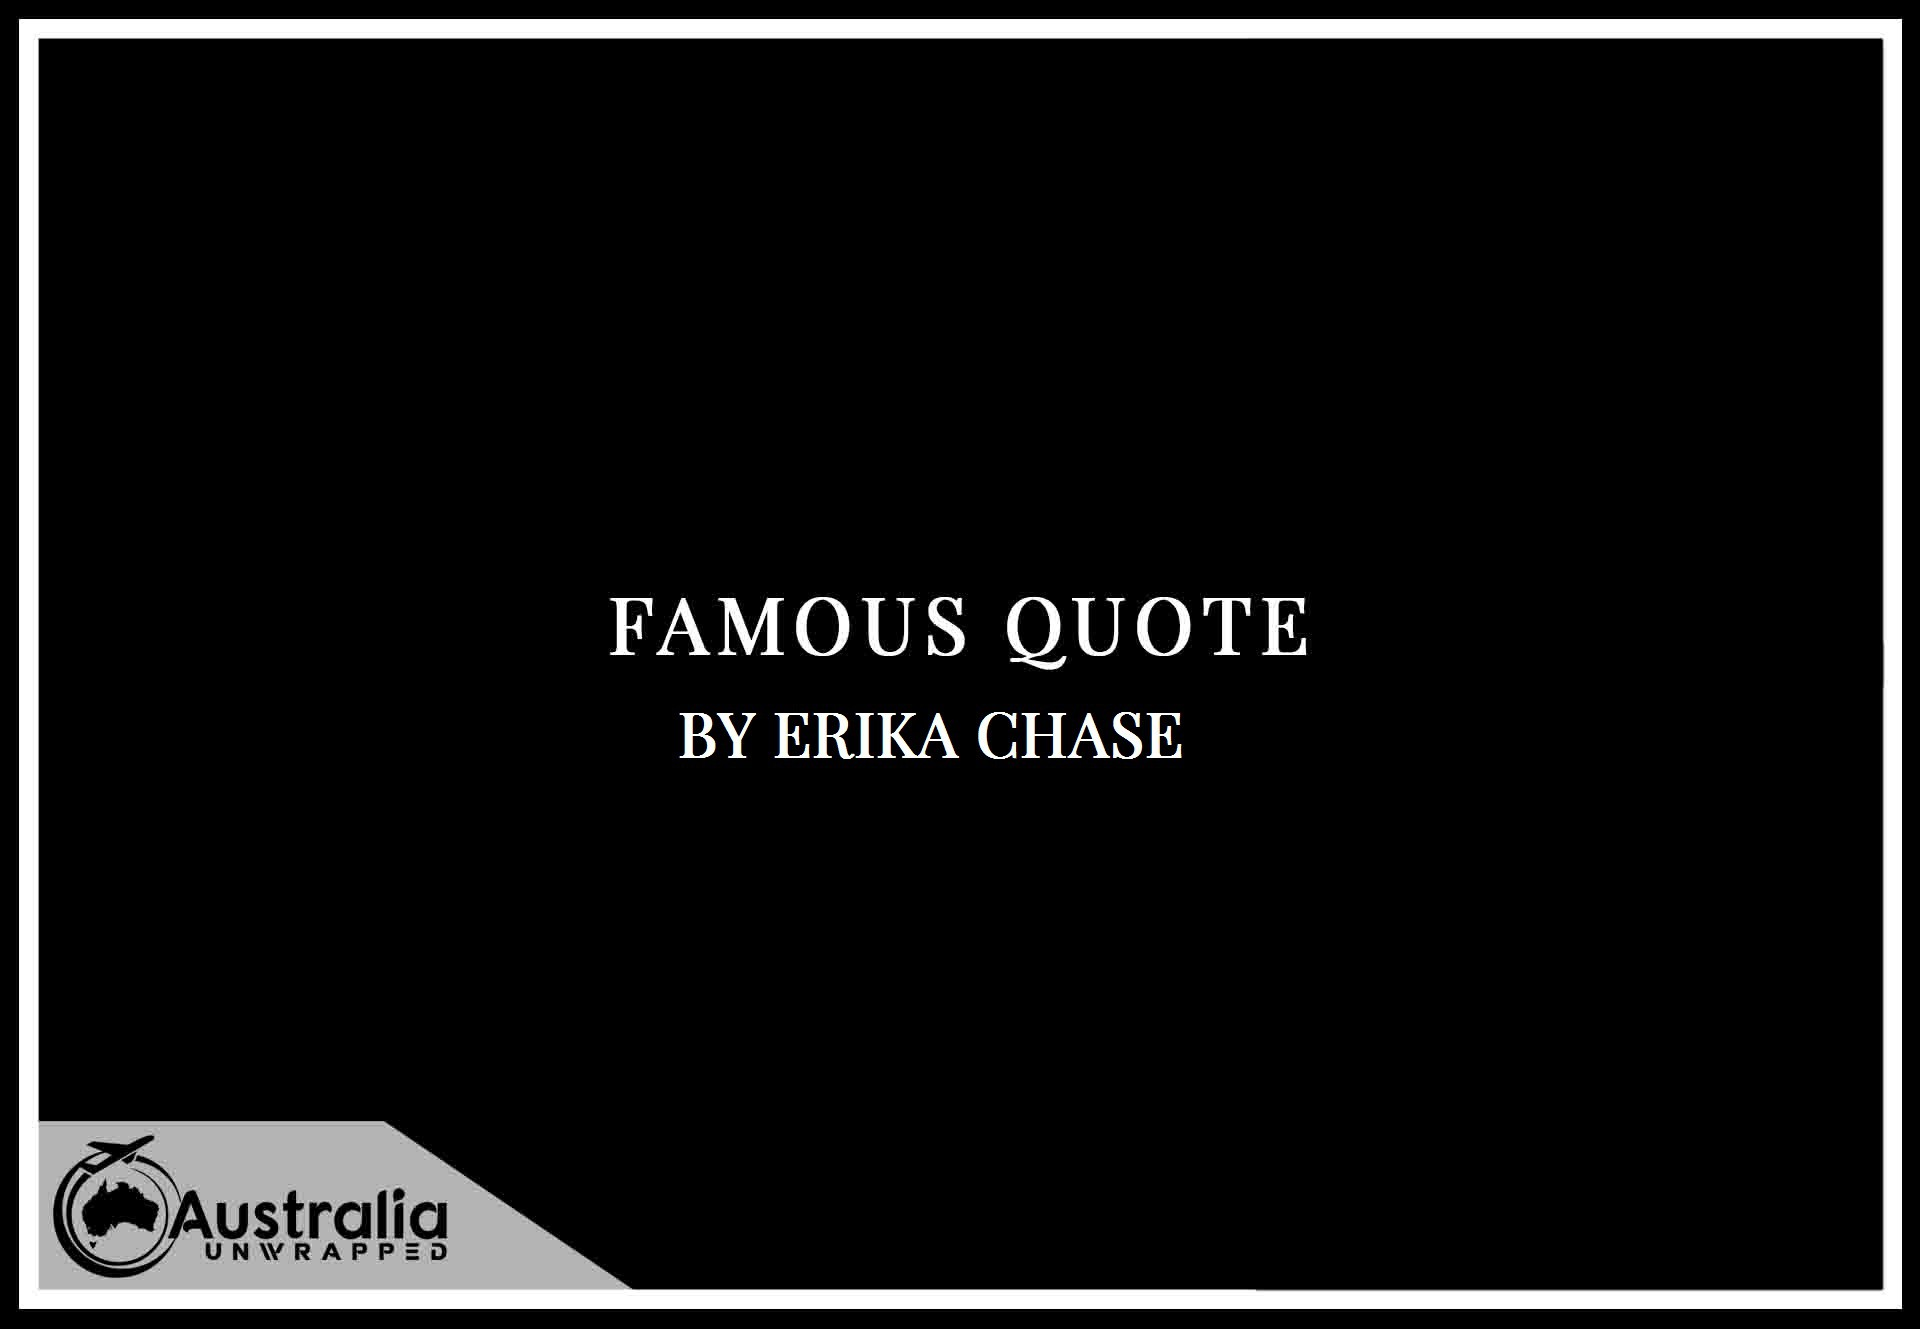 Erika Chase's Top 1 Popular and Famous Quotes